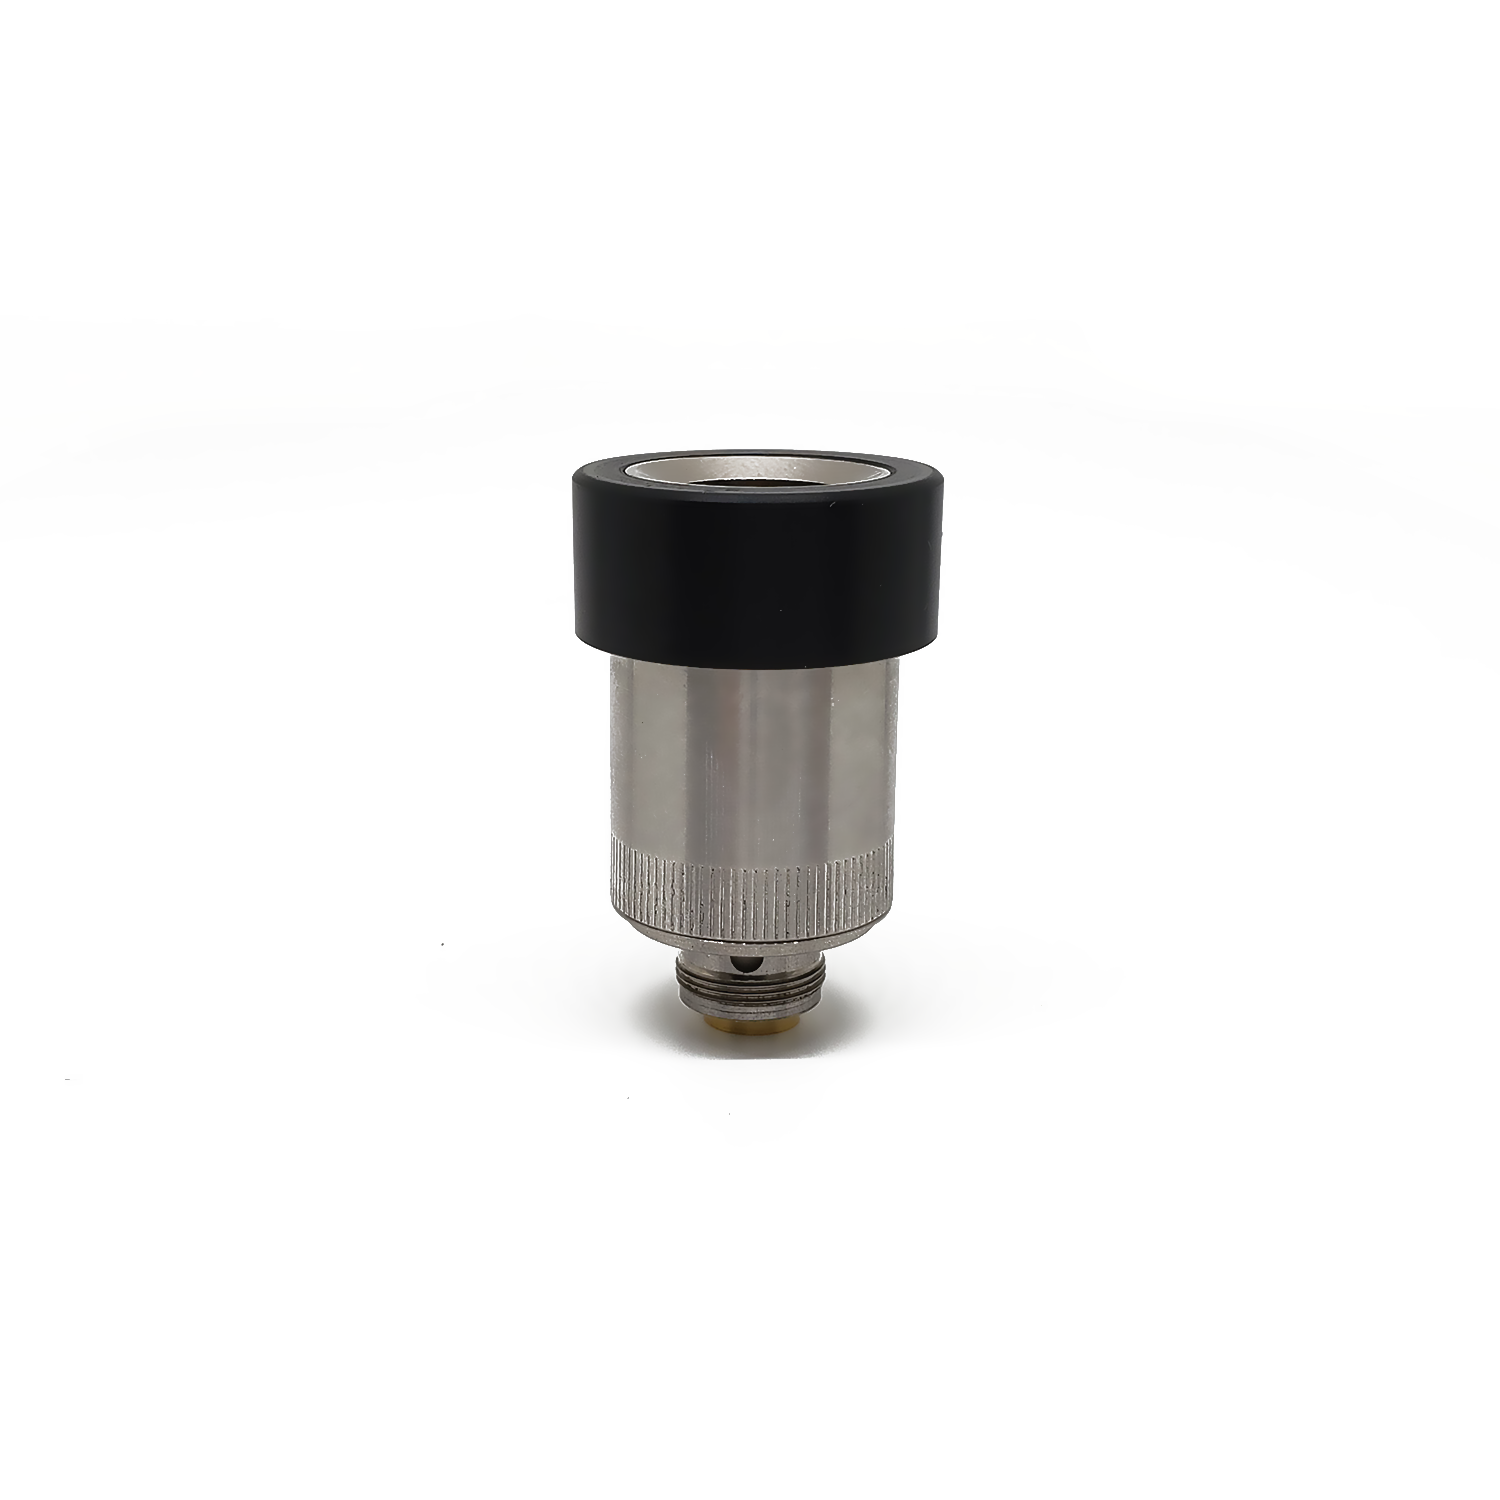 Carta V2 Wax Atomizer - DISCONTINUED